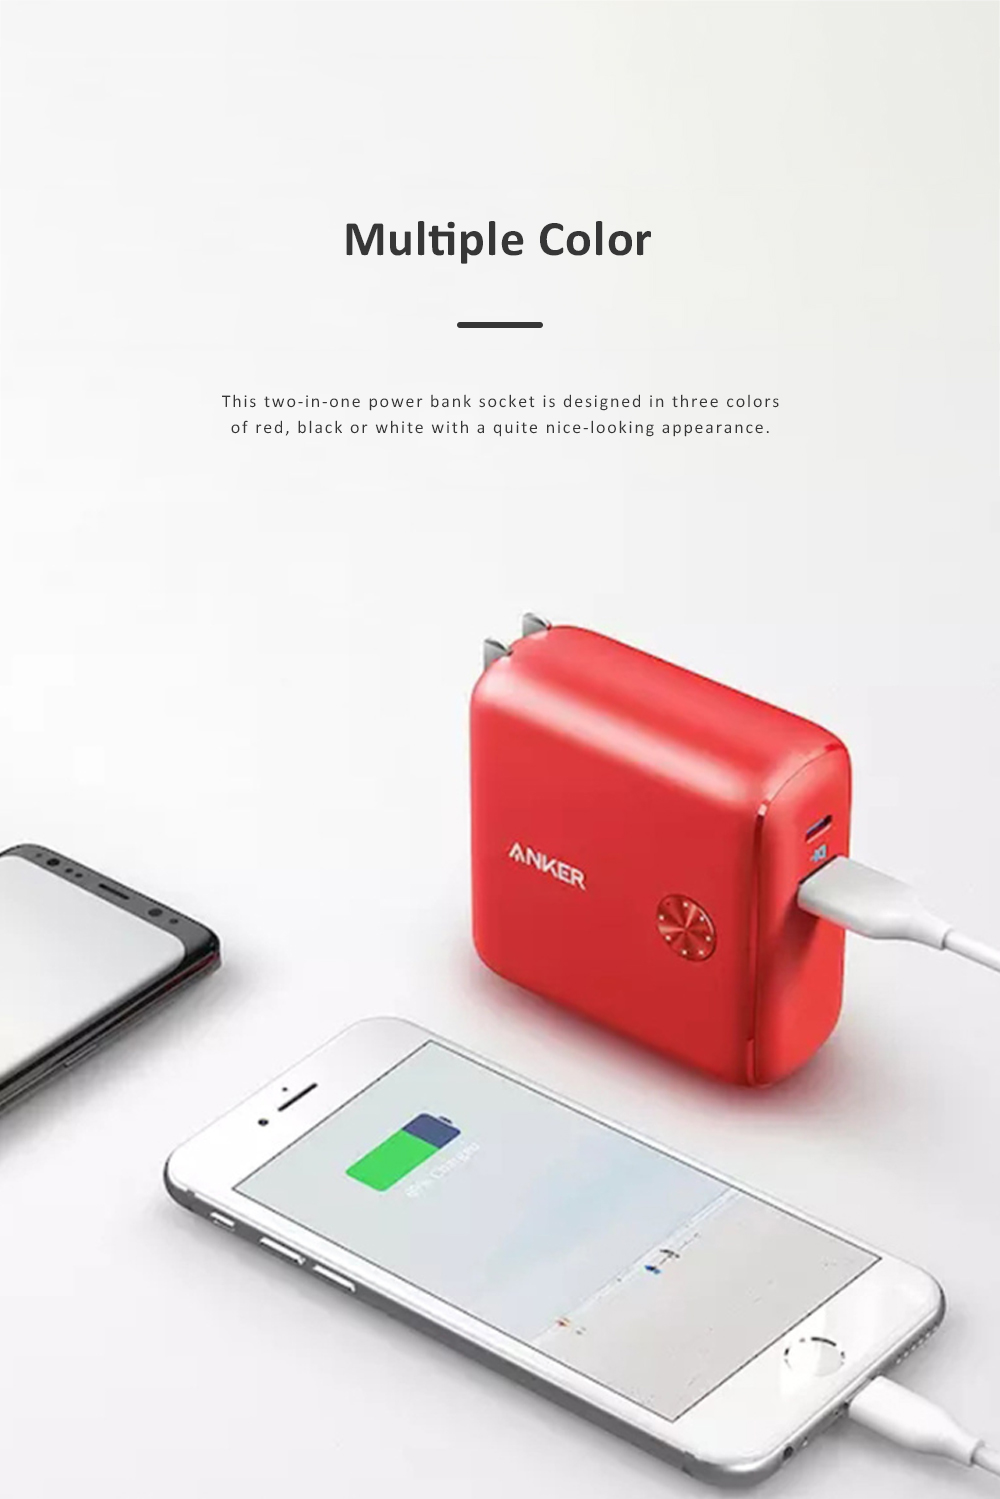 Anker 2 in 1 Power Bank Station Socket for Outdoors Travelling Quick Charge Portable Recharge Switch Power Socket 6